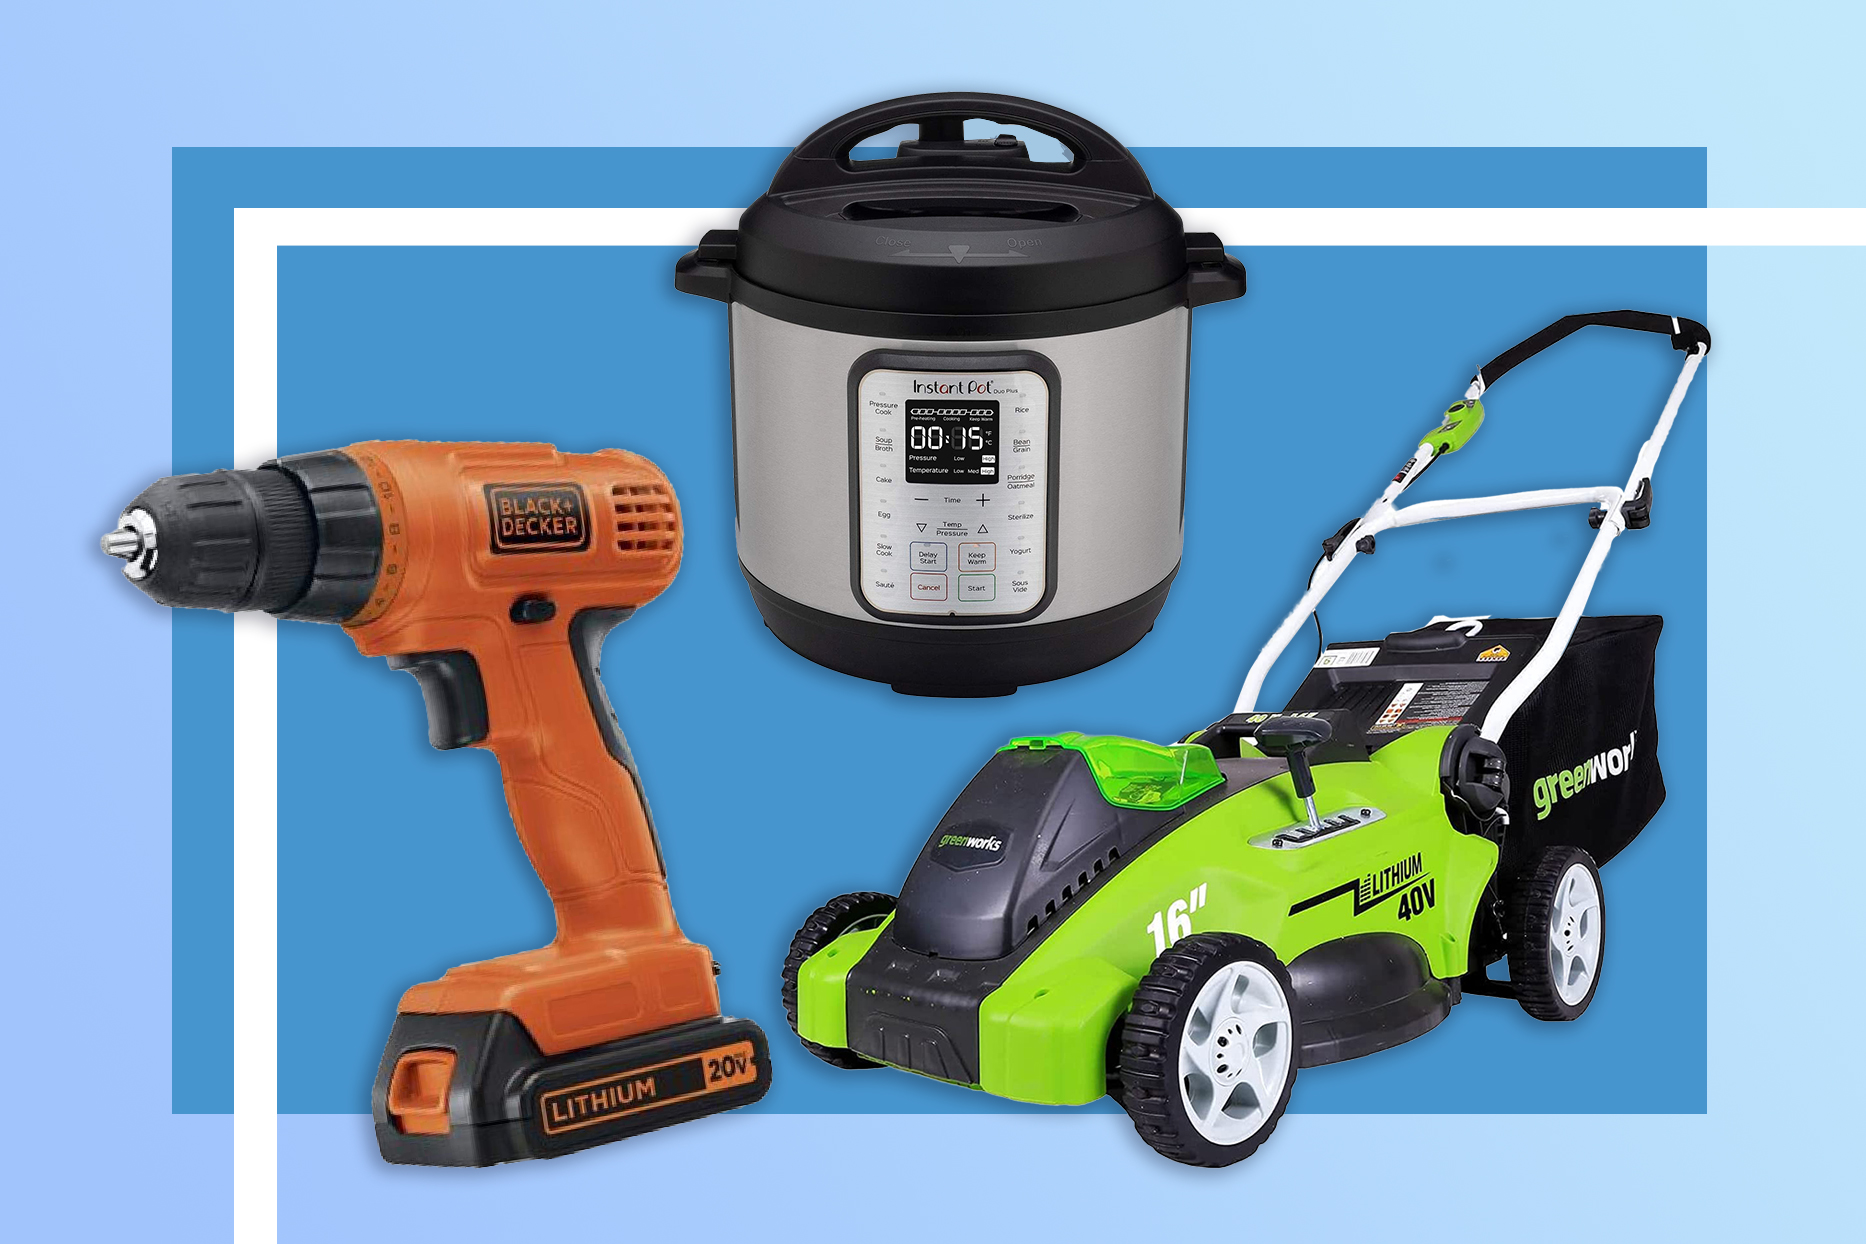 drill, instant pot and mower on blue background from prime day deals